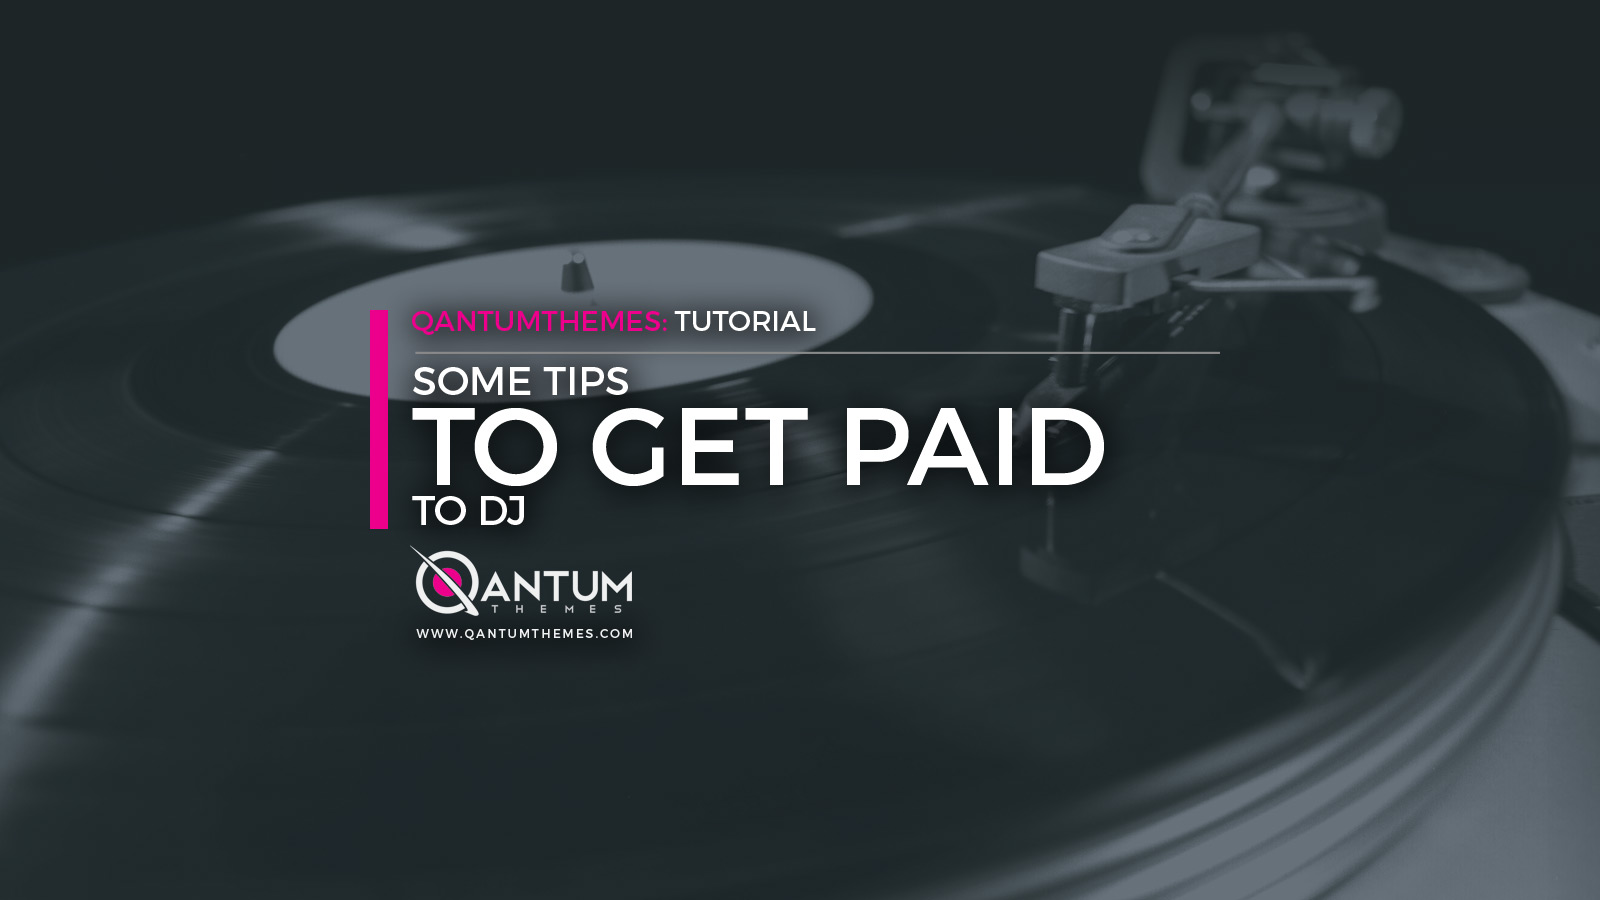 How To Get Paid To Dj